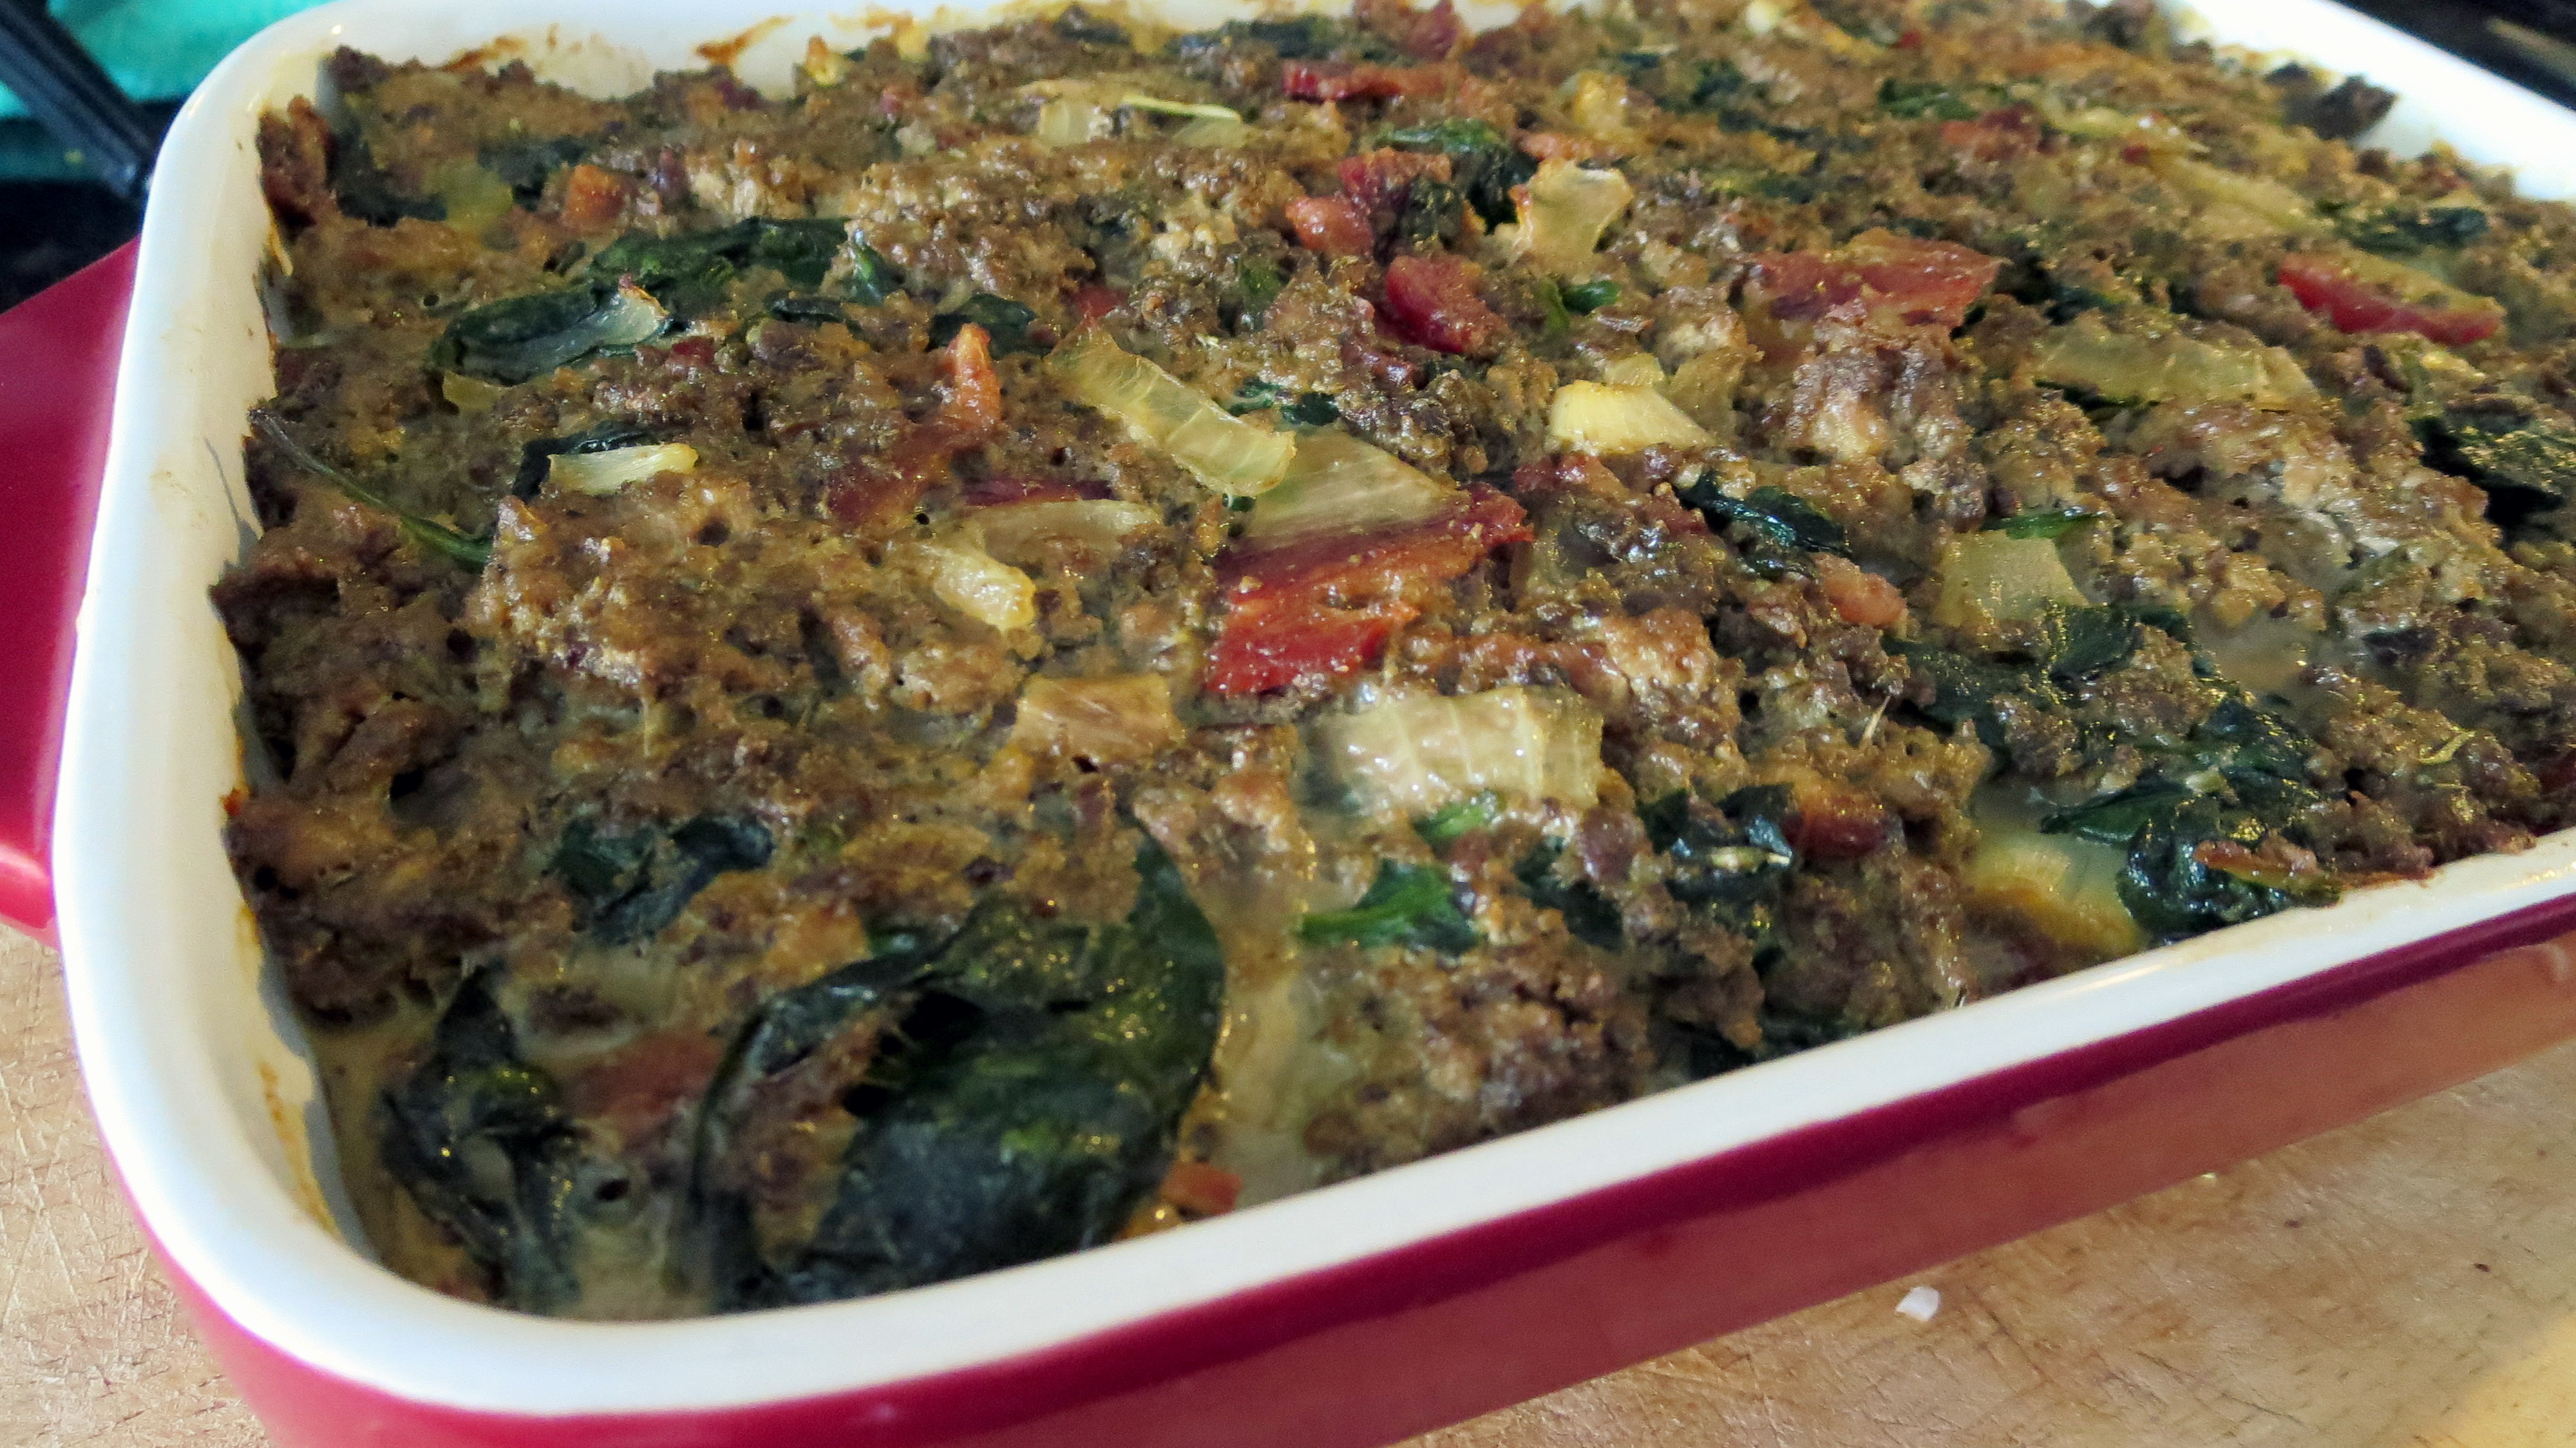 Popeye meatloaf right out of the oven